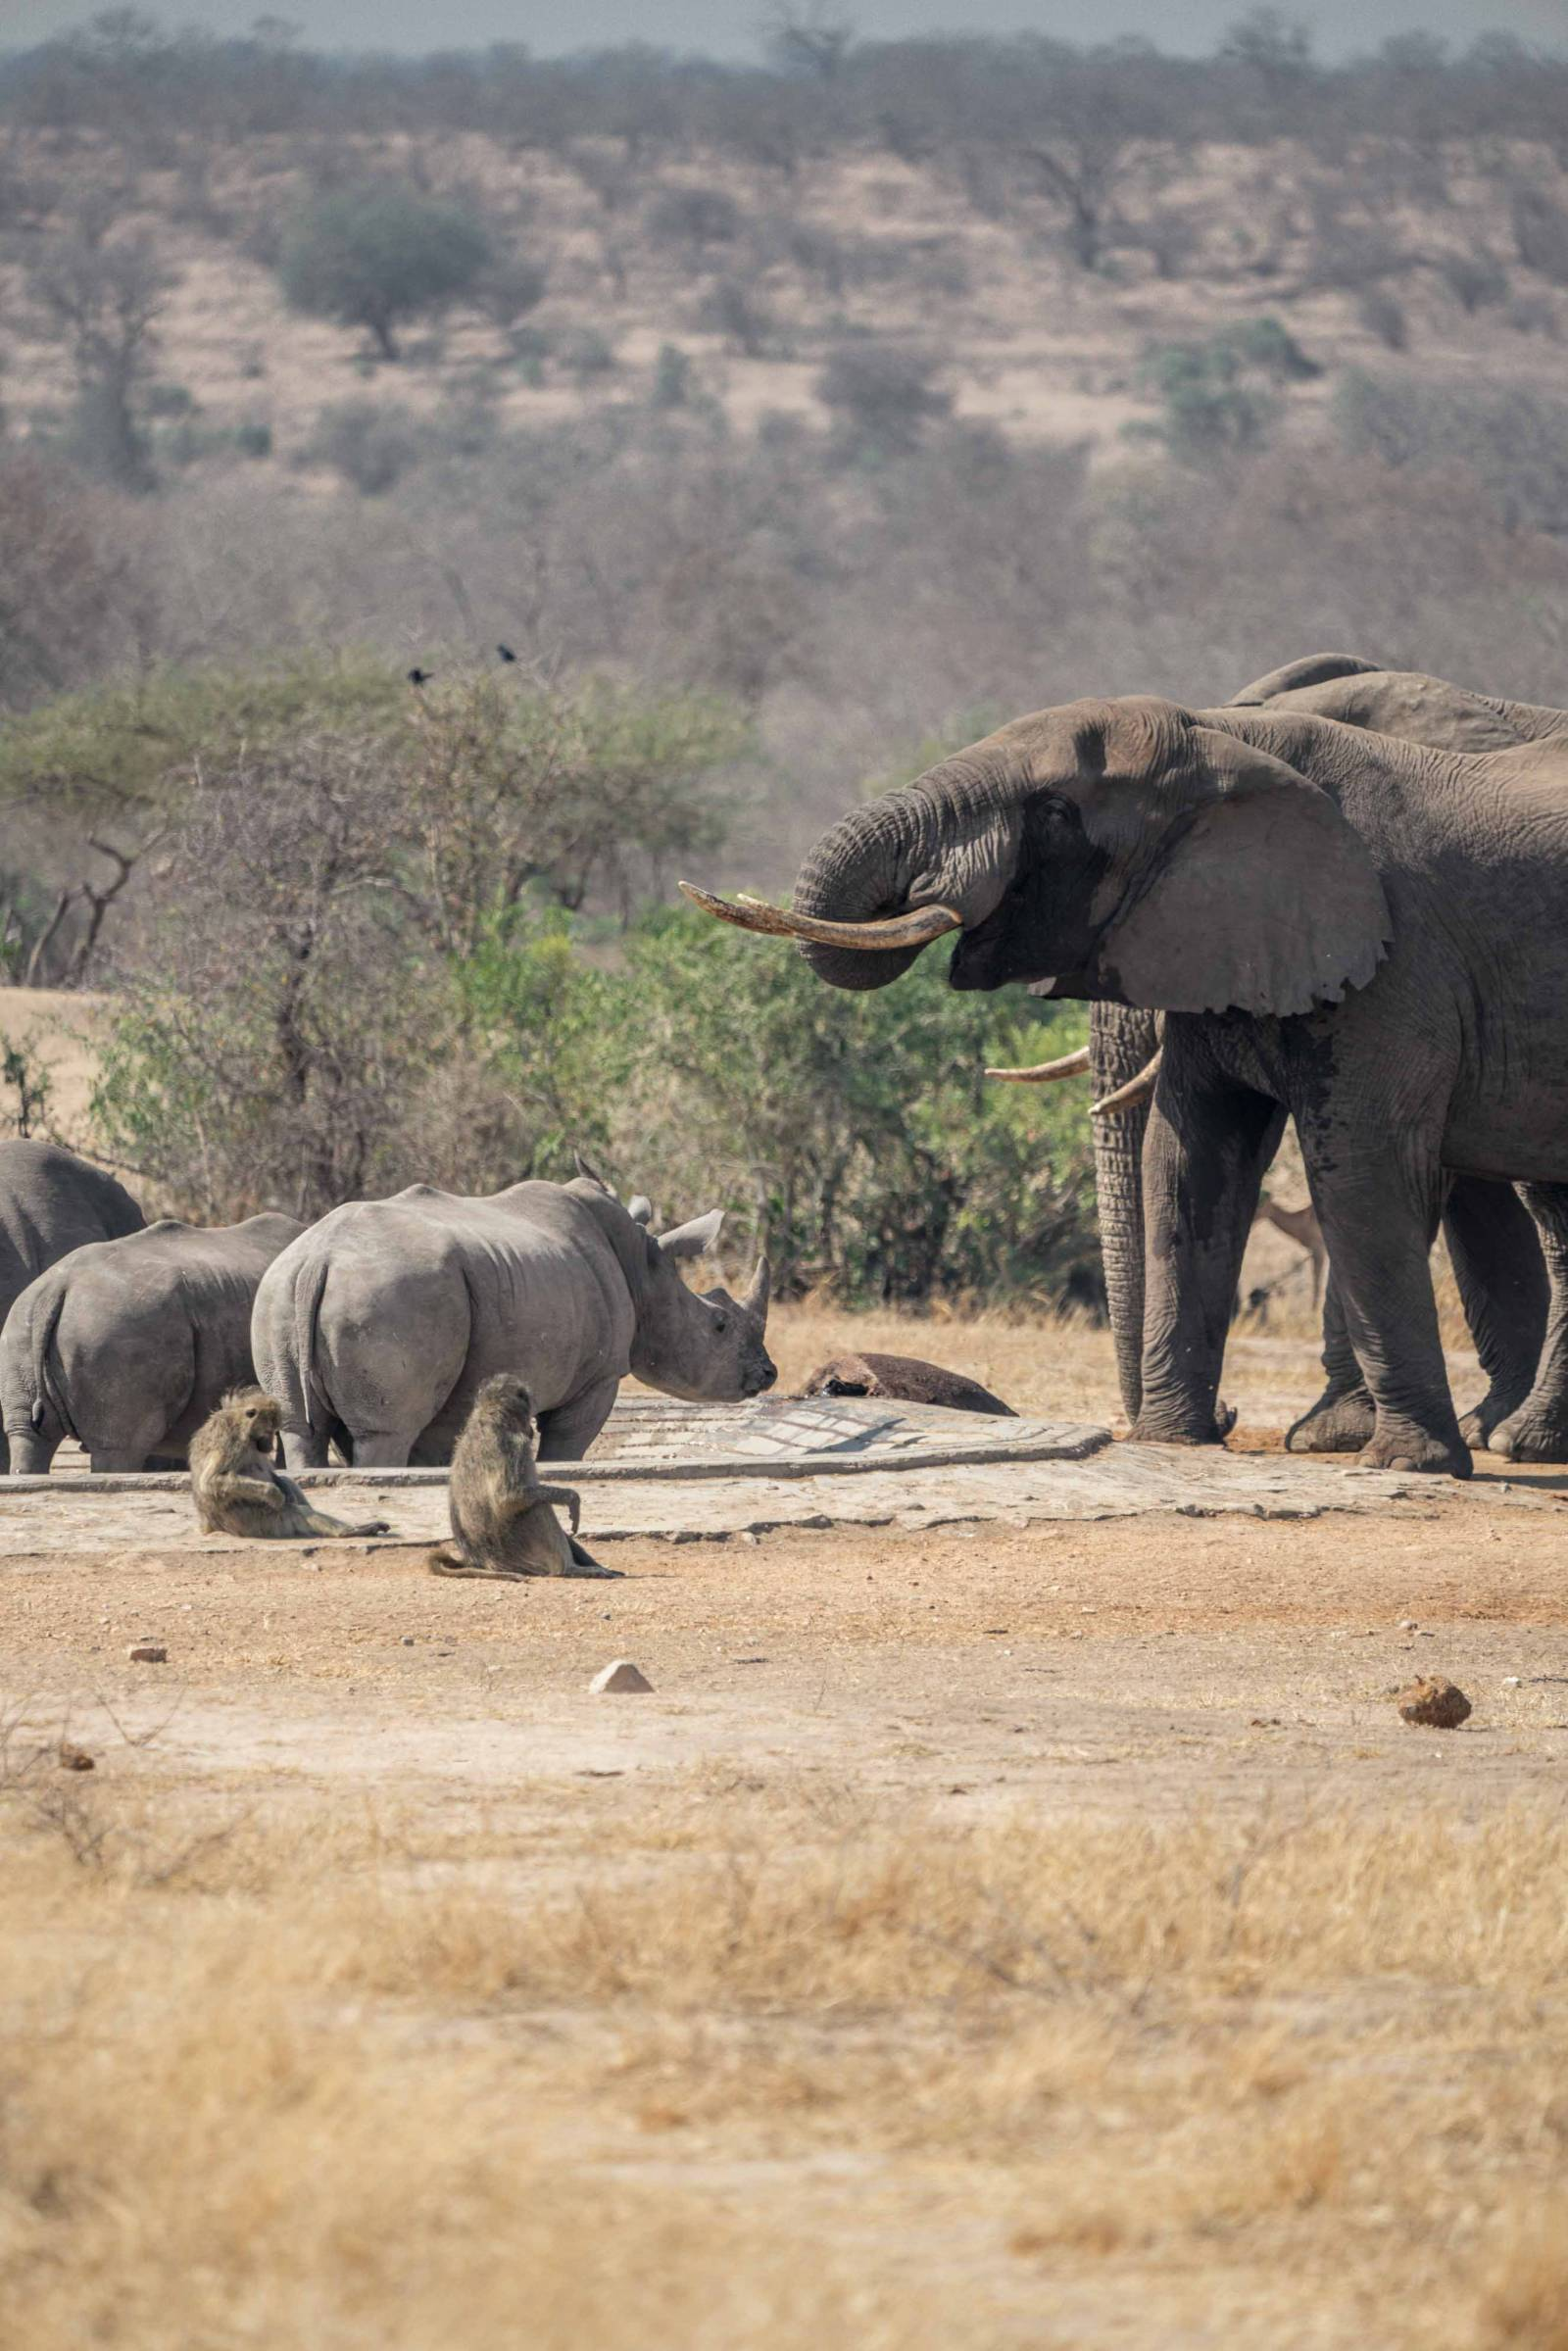 Animals gathering in kruger national park